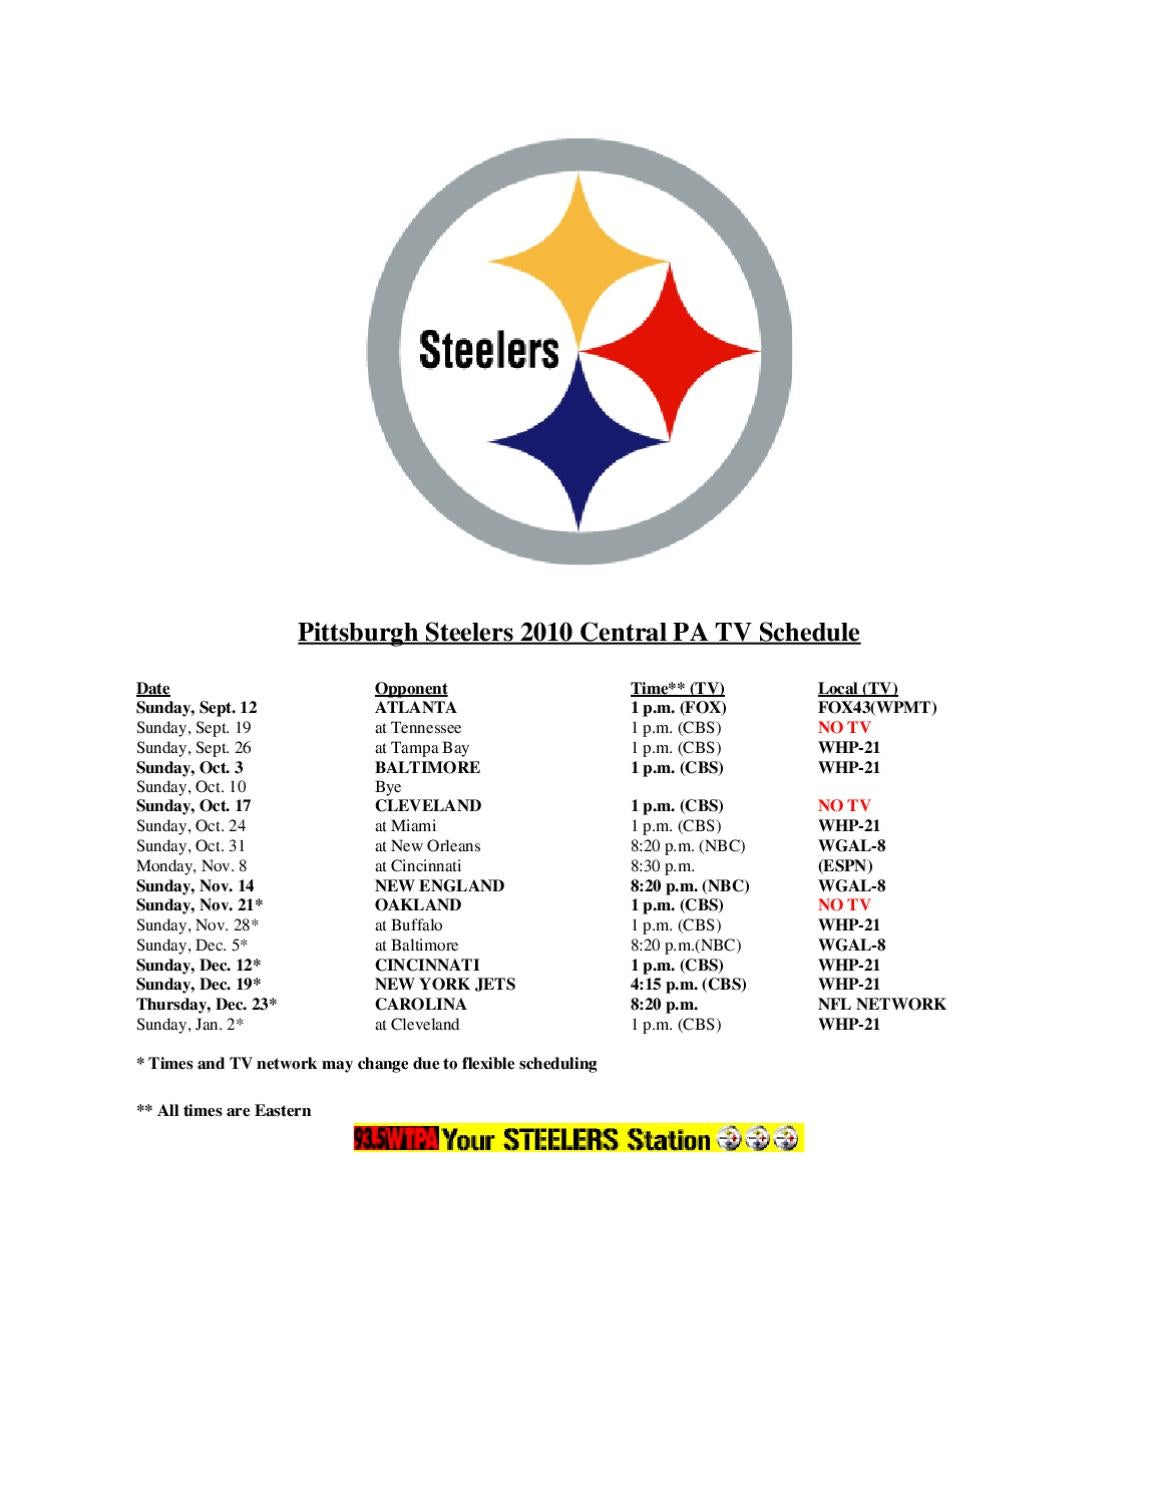 Pittsburgh Steelers 2010 Central PA TV Schedule by Joe